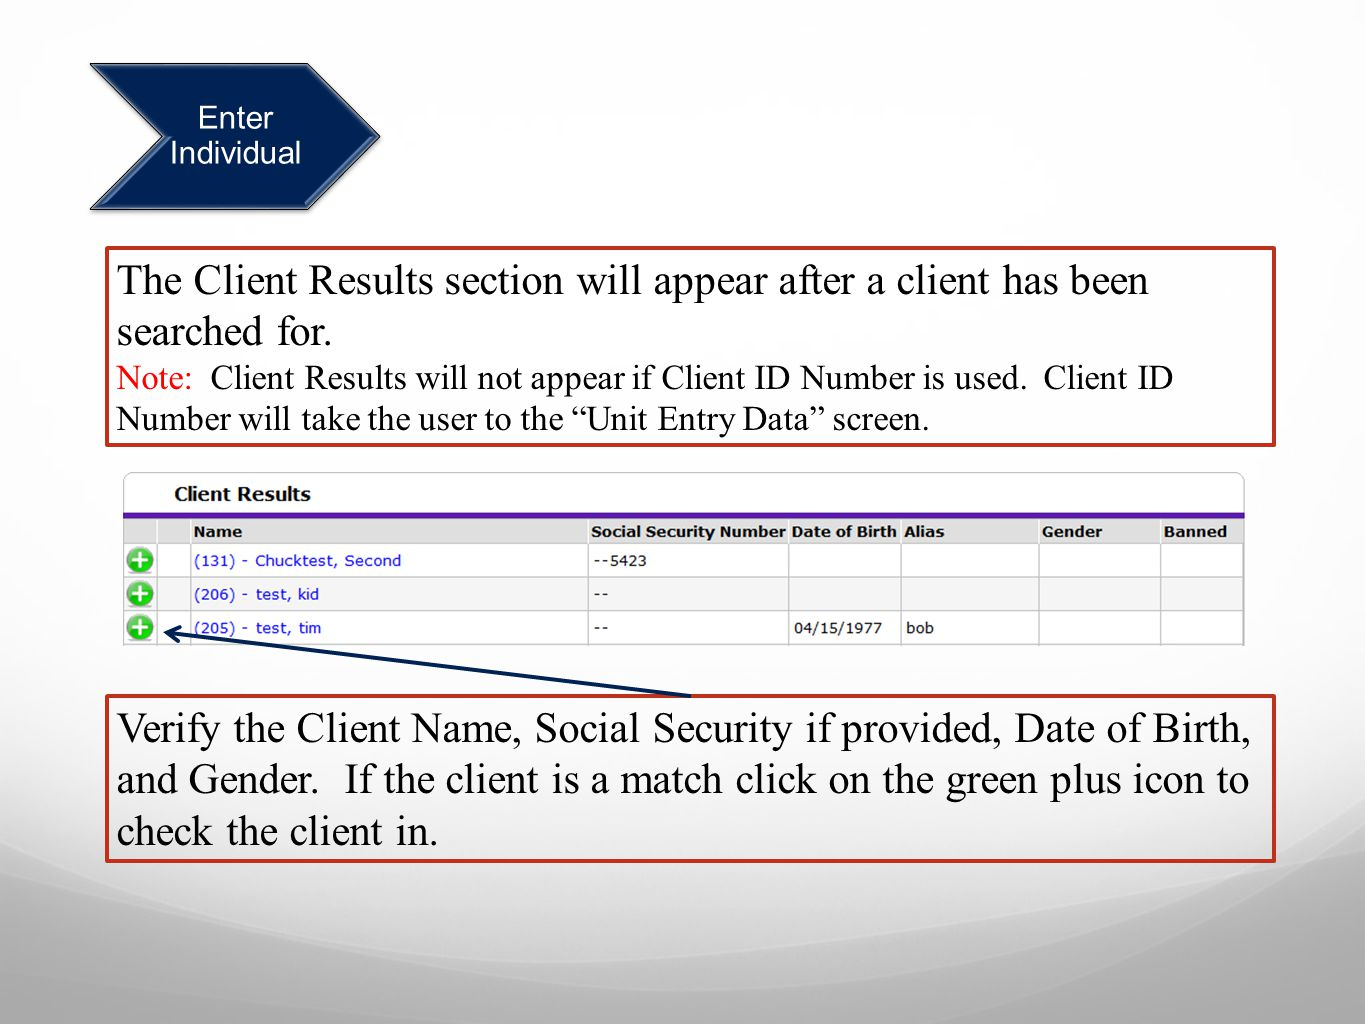 Enter Individual The Client Results section will appear after a client has been searched for.